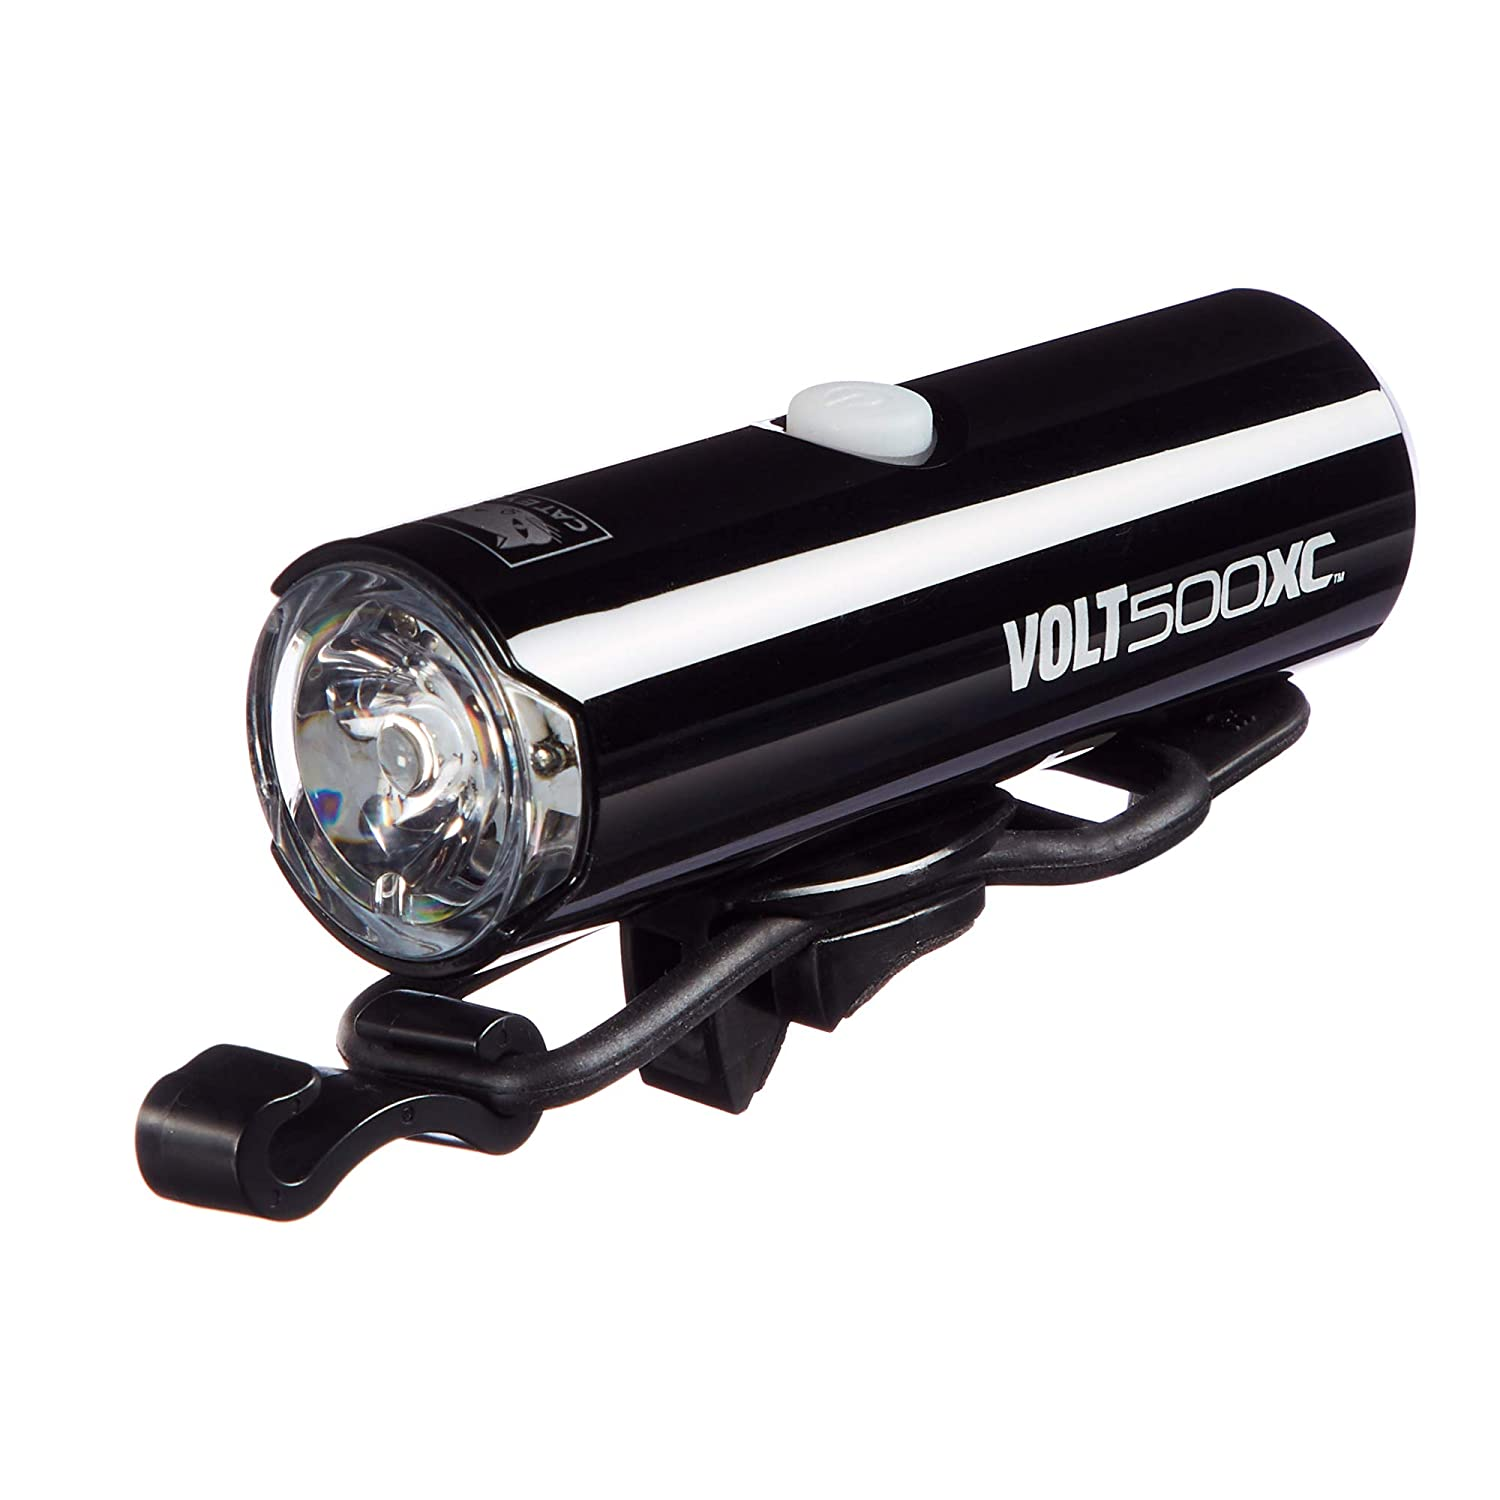 CAT EYE Volt 500XC Rechargeable Bike Light and Rapid X2 Rechargeable Rear Bike Light